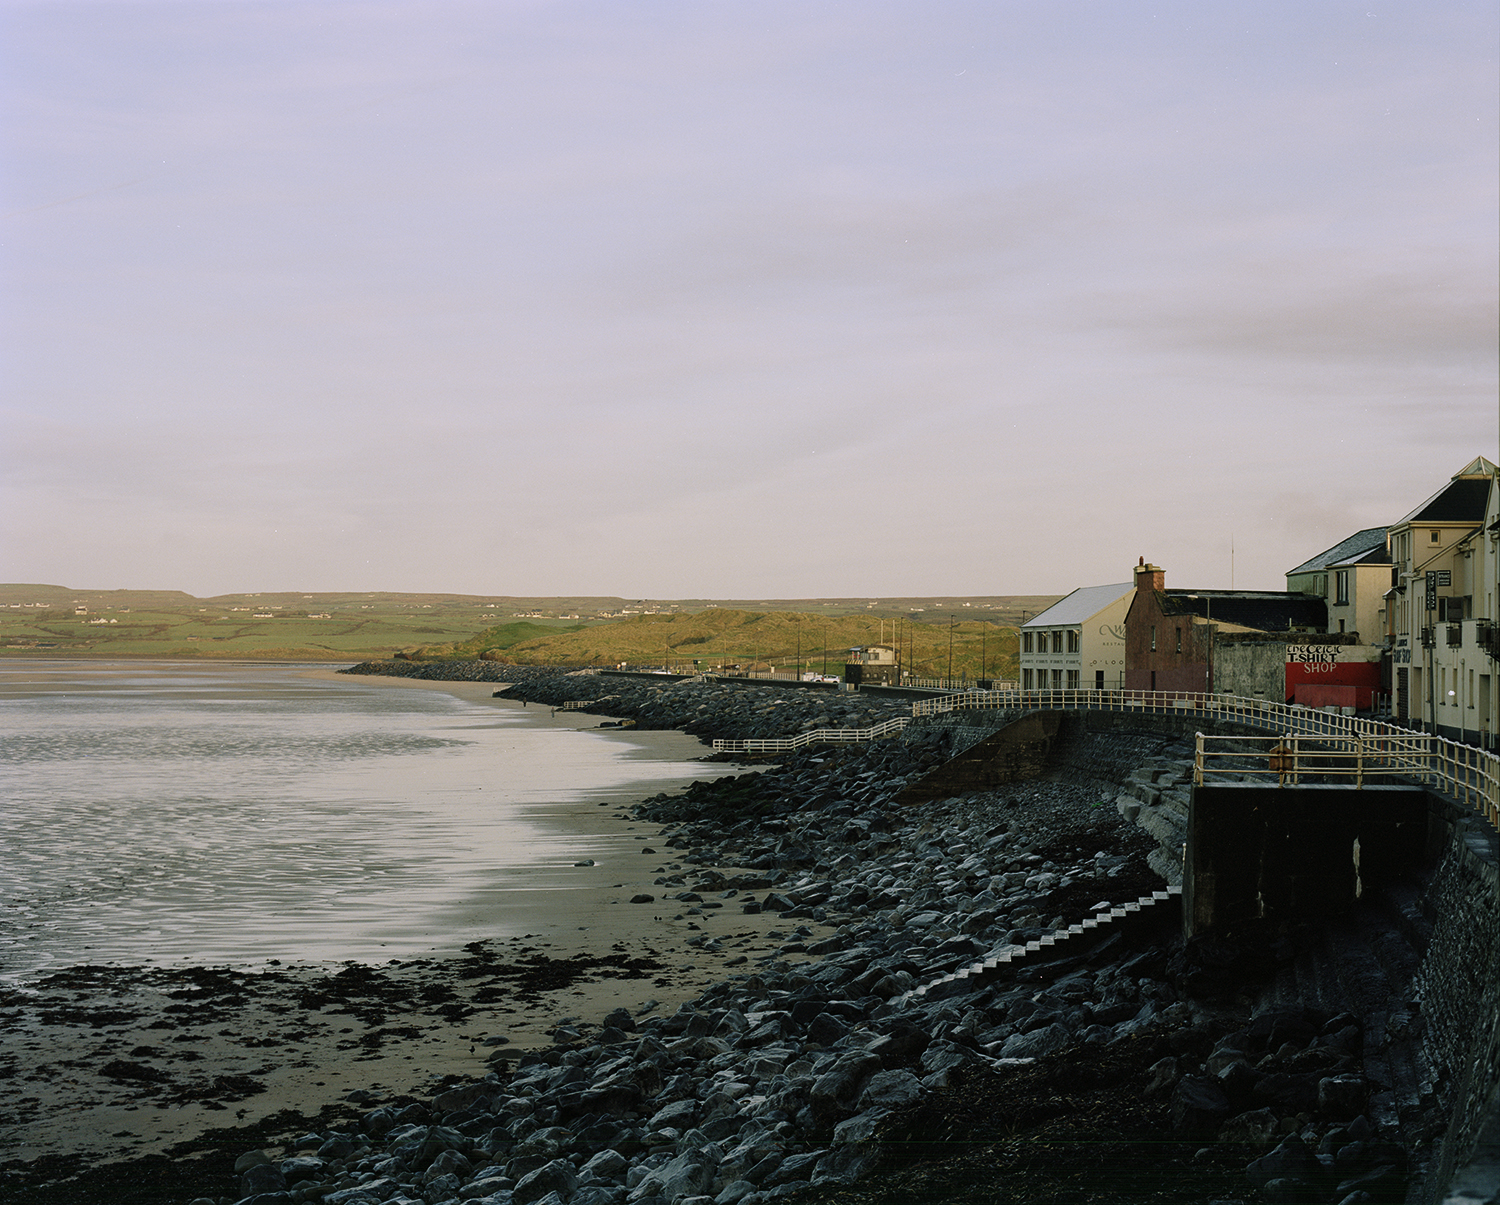 Lahinch, County Clare, 2017